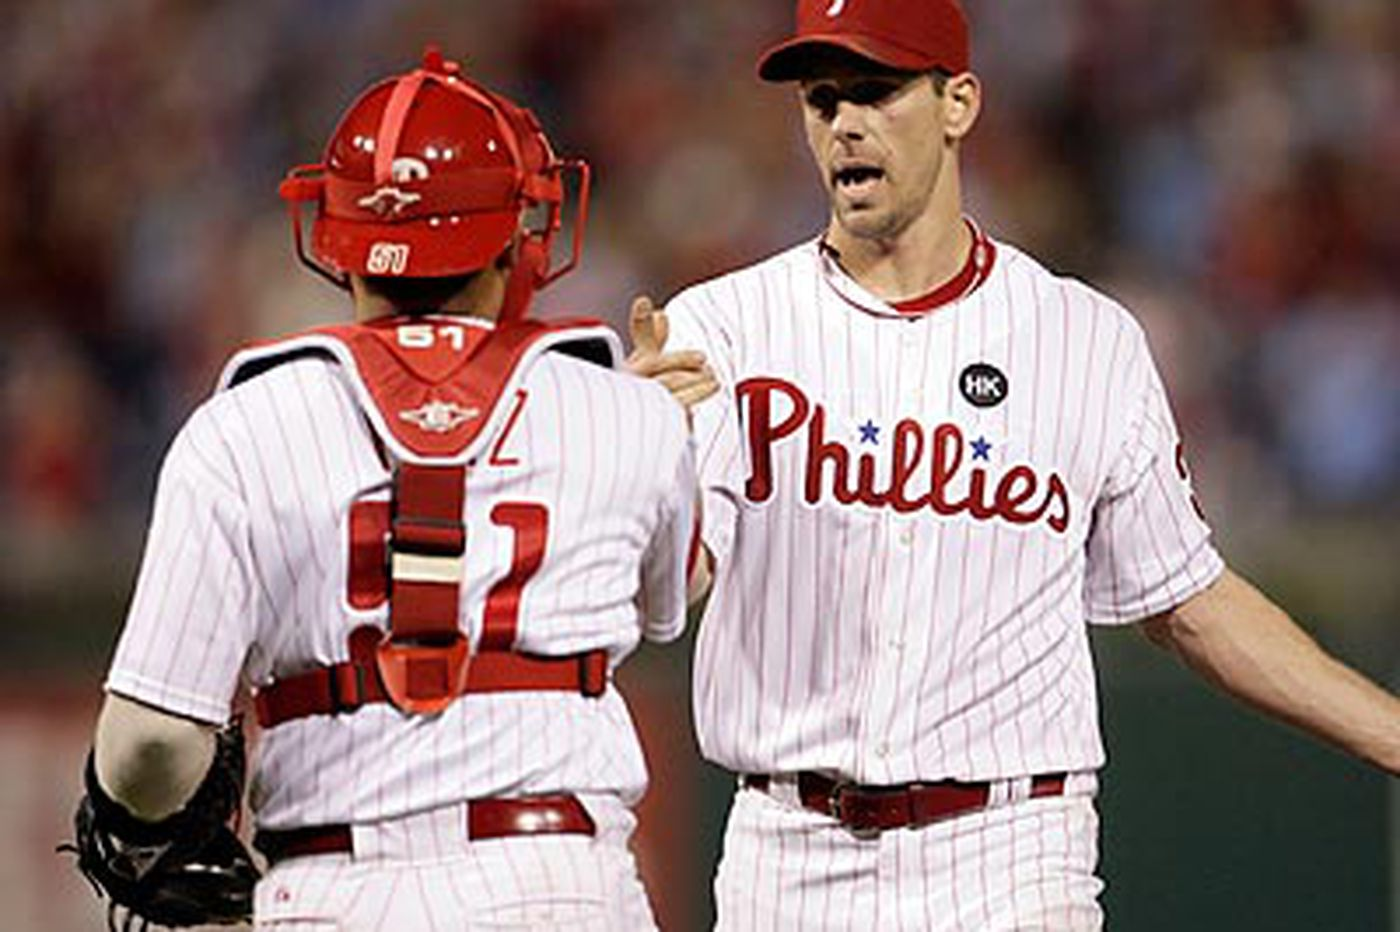 Paul Hagen: A look inside the Phillies' signing of Cliff Lee